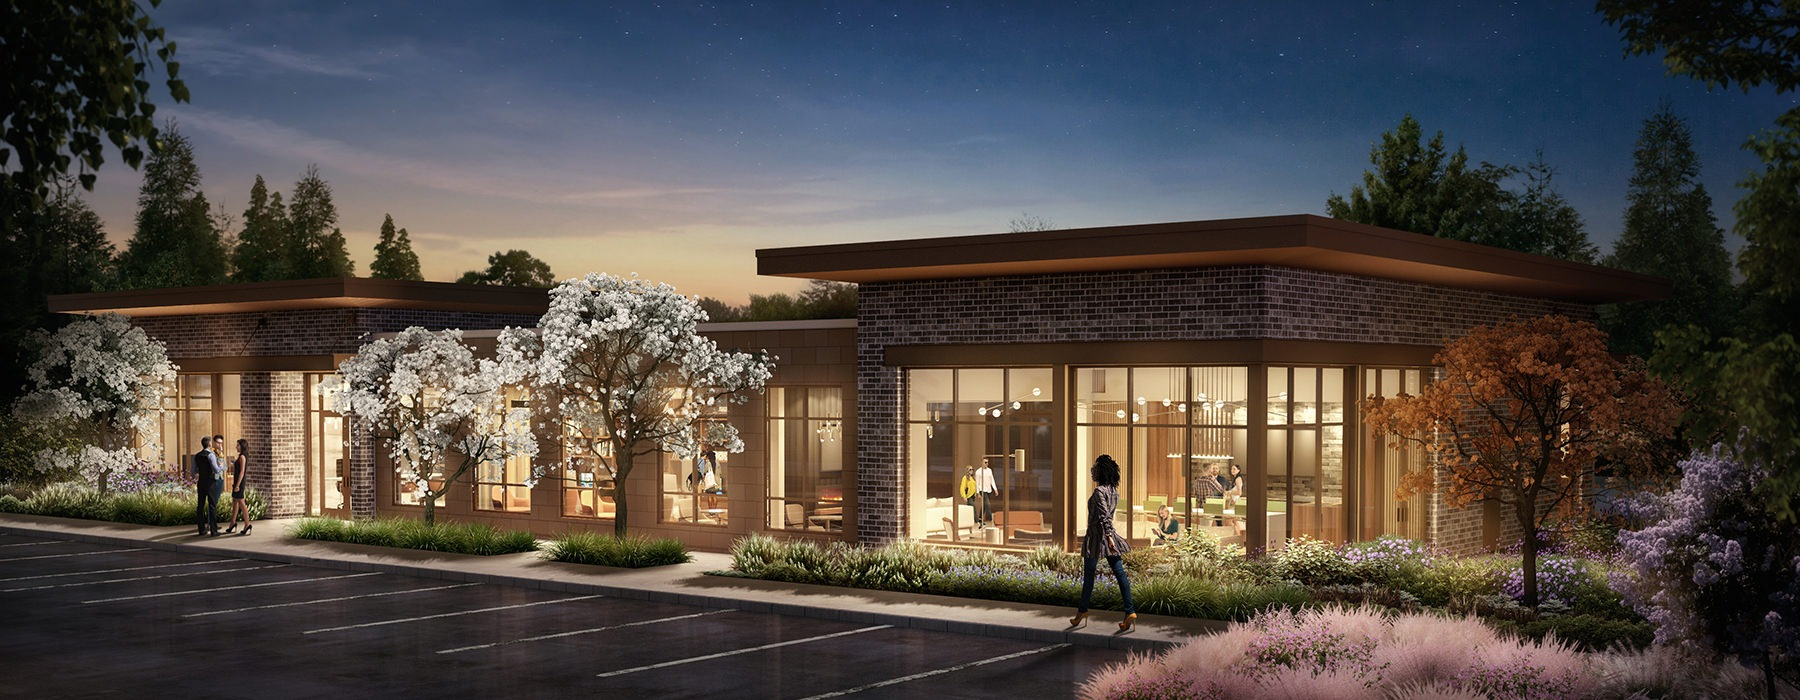 rendering of Leasing Center and Art Gallery